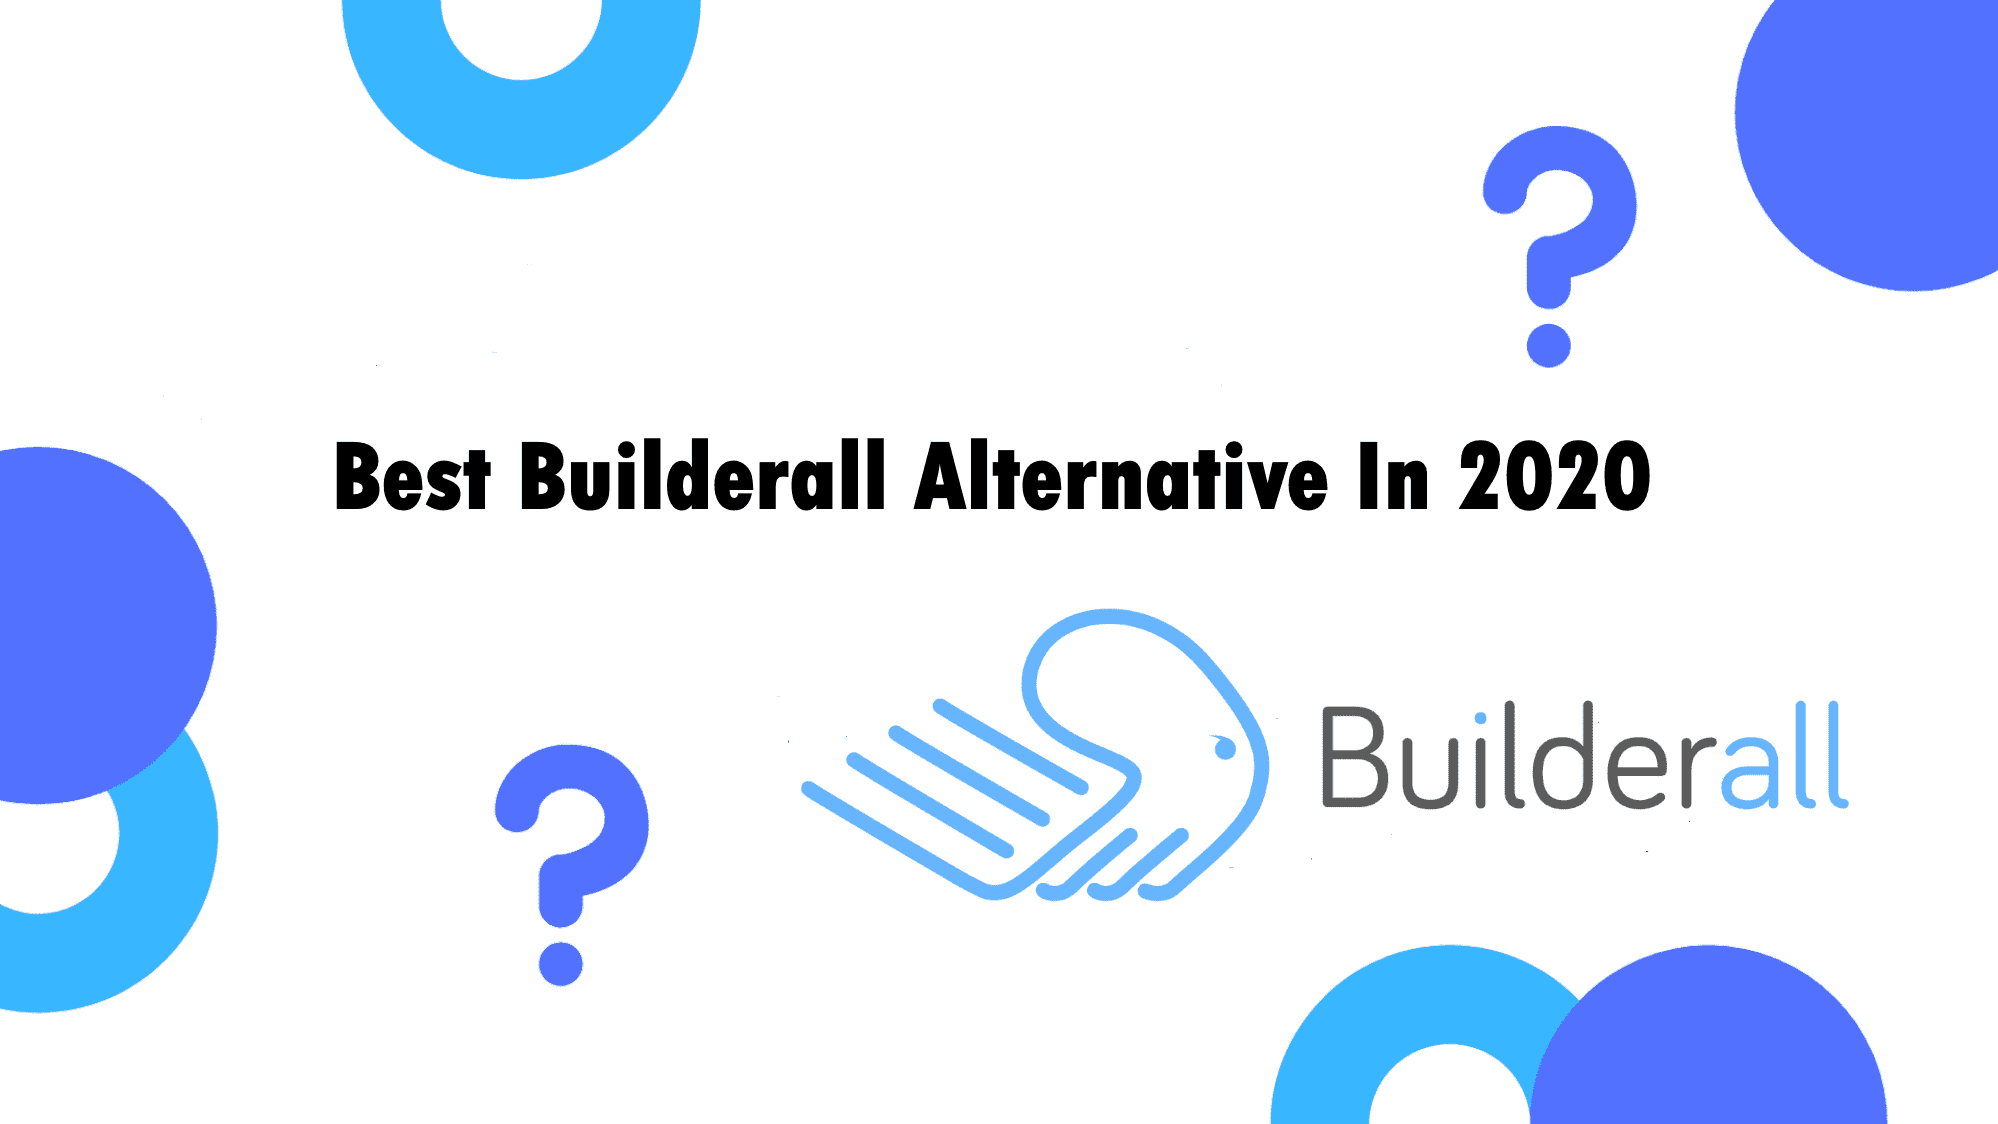 The Best Builderall Alternative You'll Find in 2020